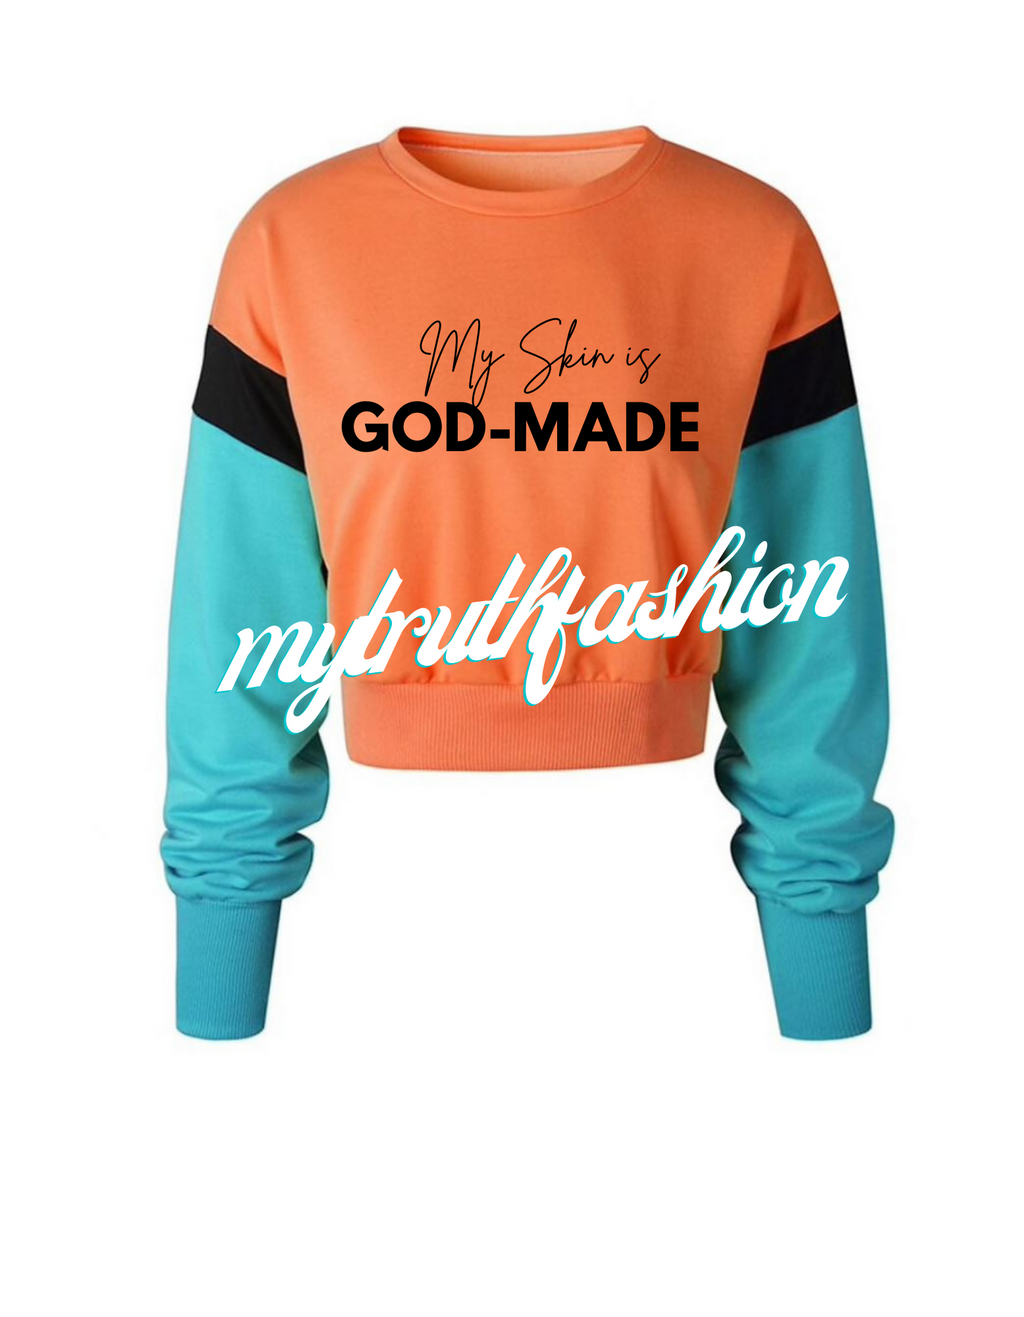 *PRE-ORDER* COLORBLOCK CRUSADER CROP SWEATSHIRT